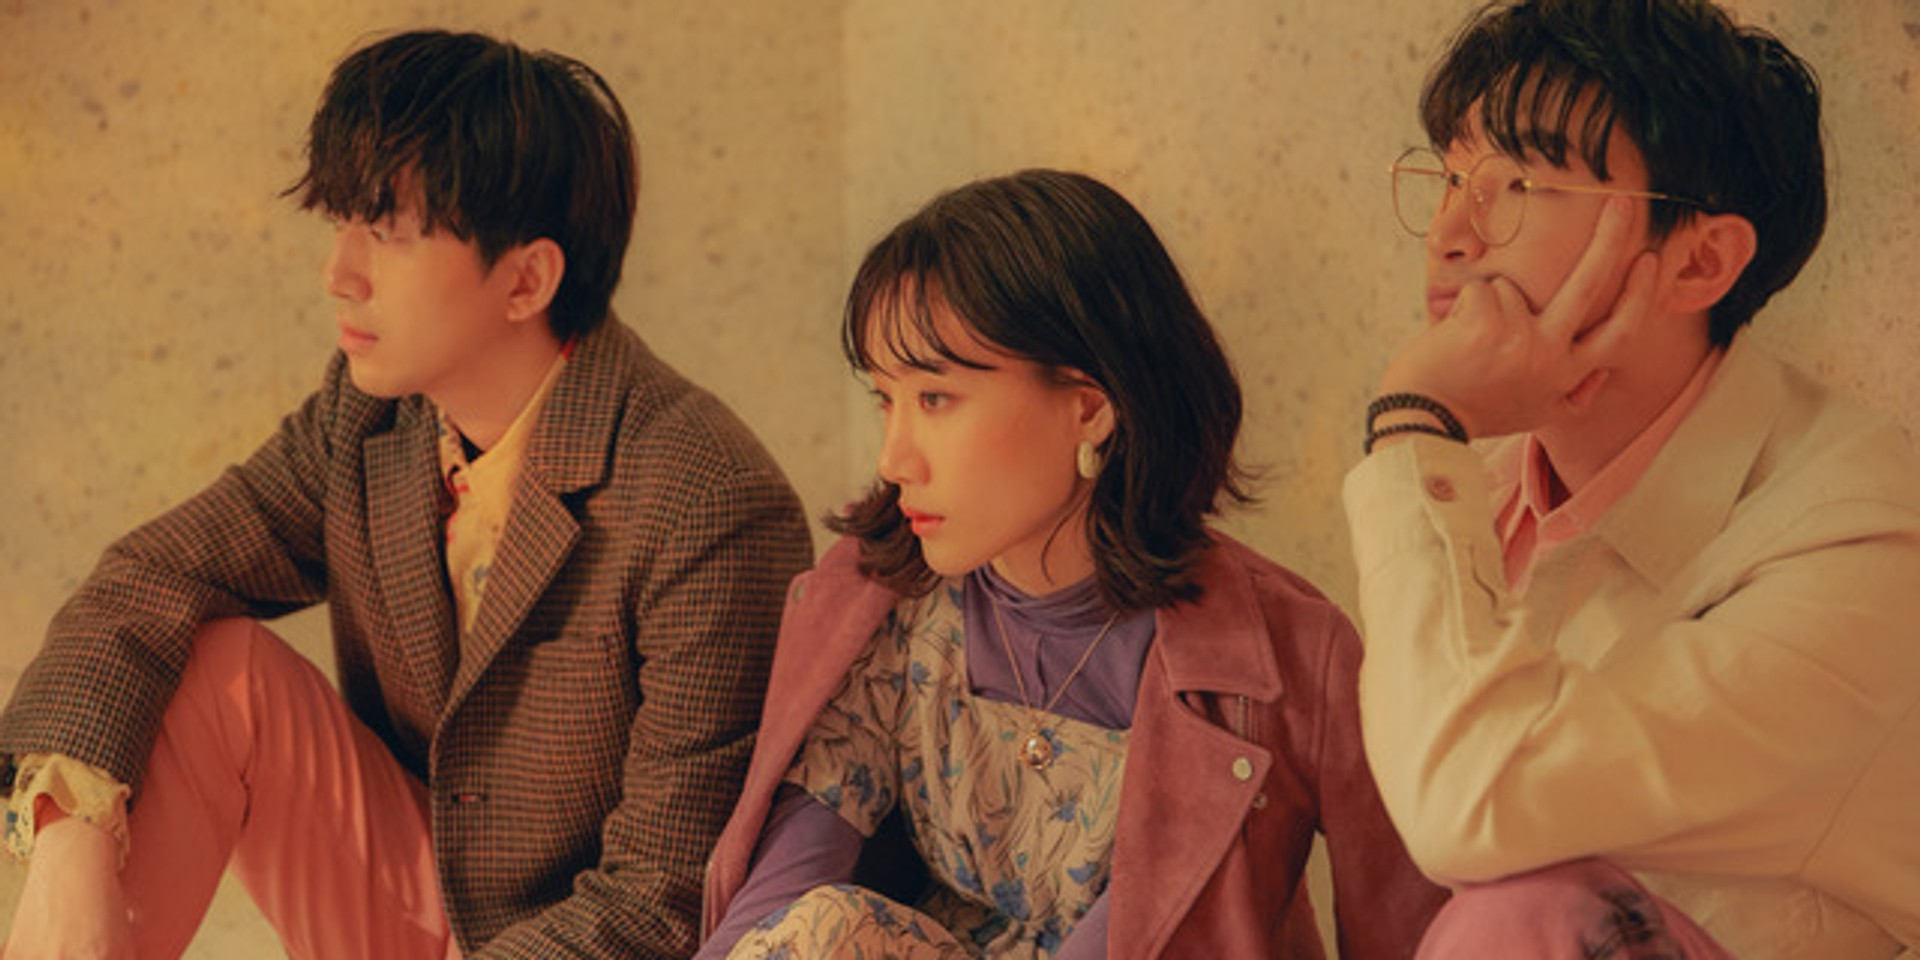 Korean indie band Chamsom to perform in Singapore in February 2020